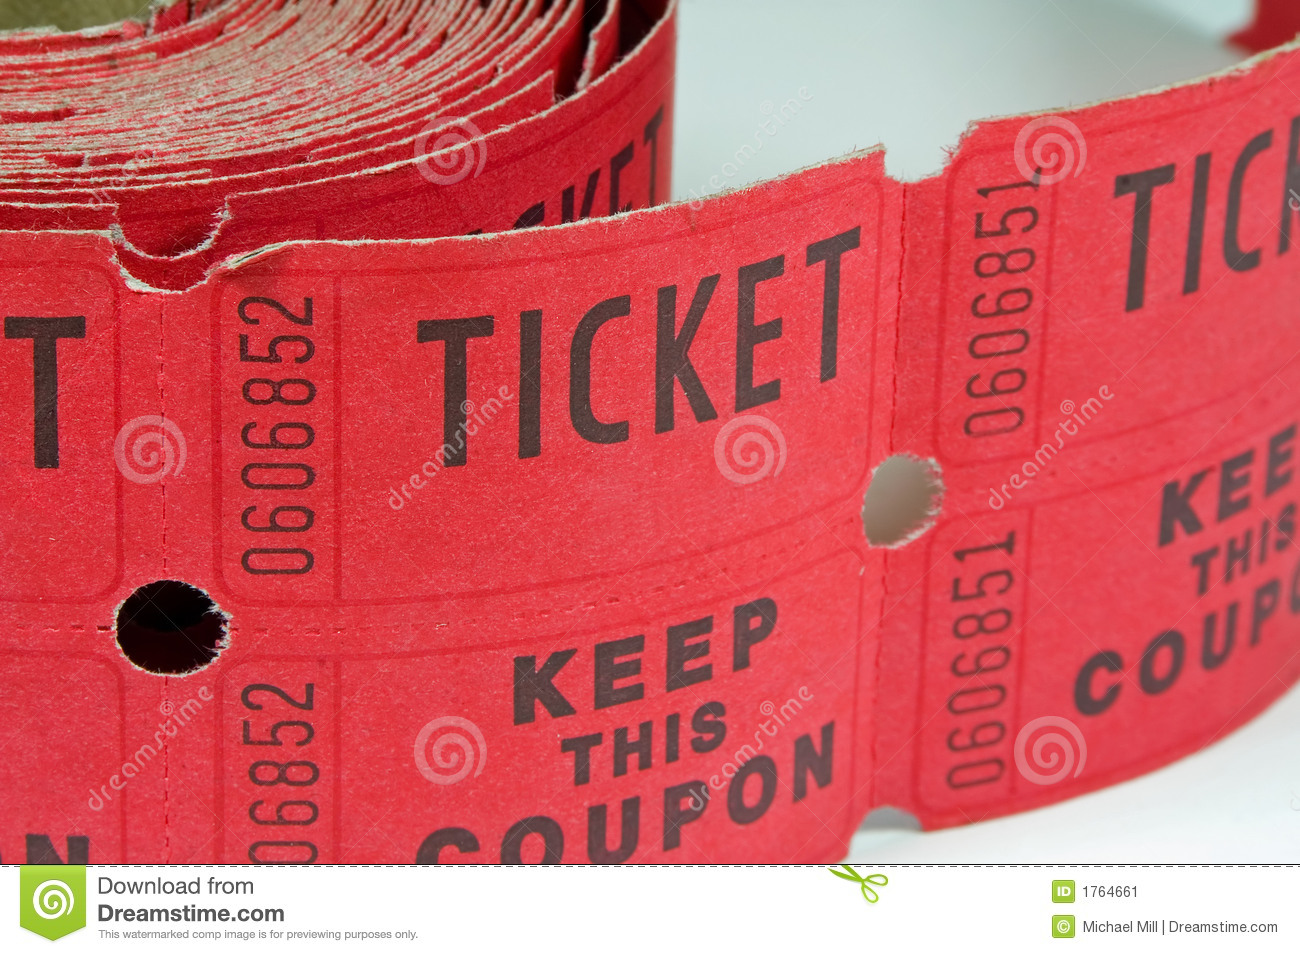 raffle stock photos images pictures images roll of raffle tickets stock image